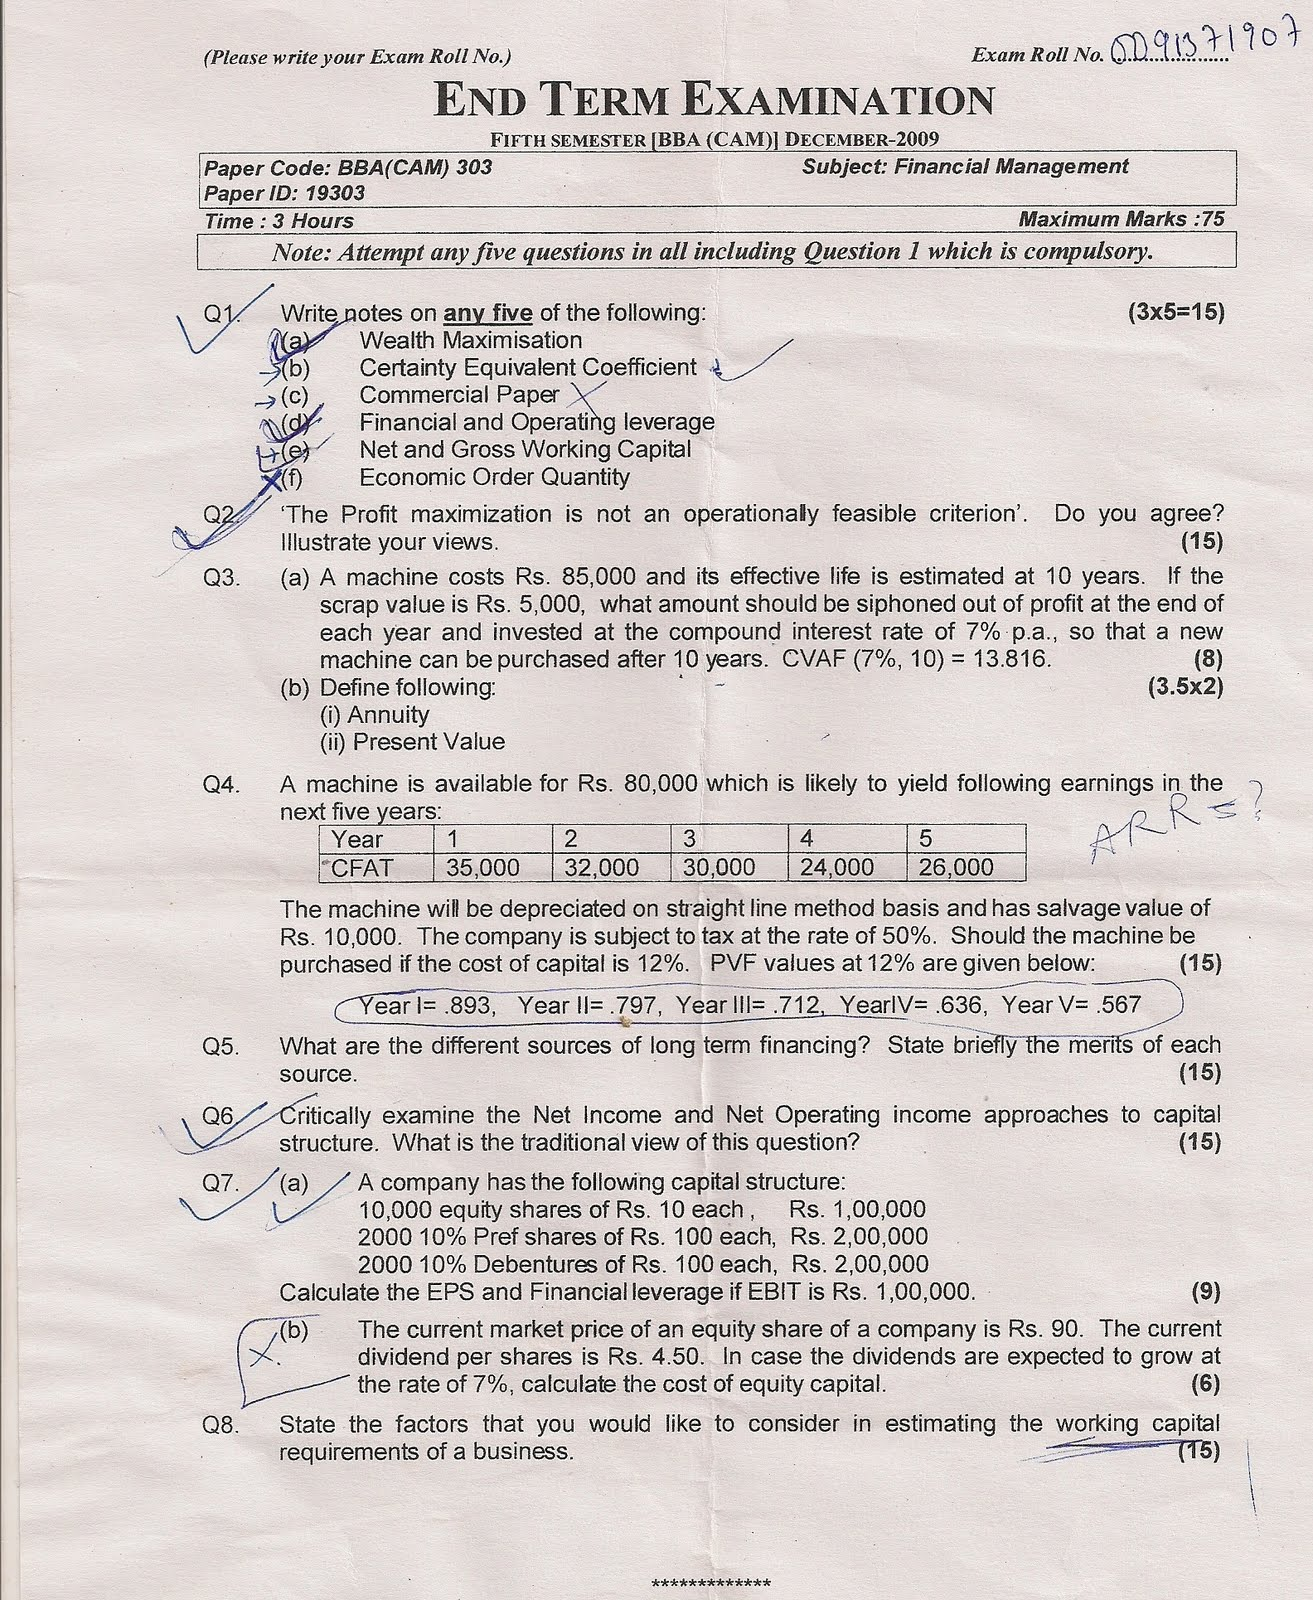 I P University question papers by Avinash : 5th sem BBA(cam